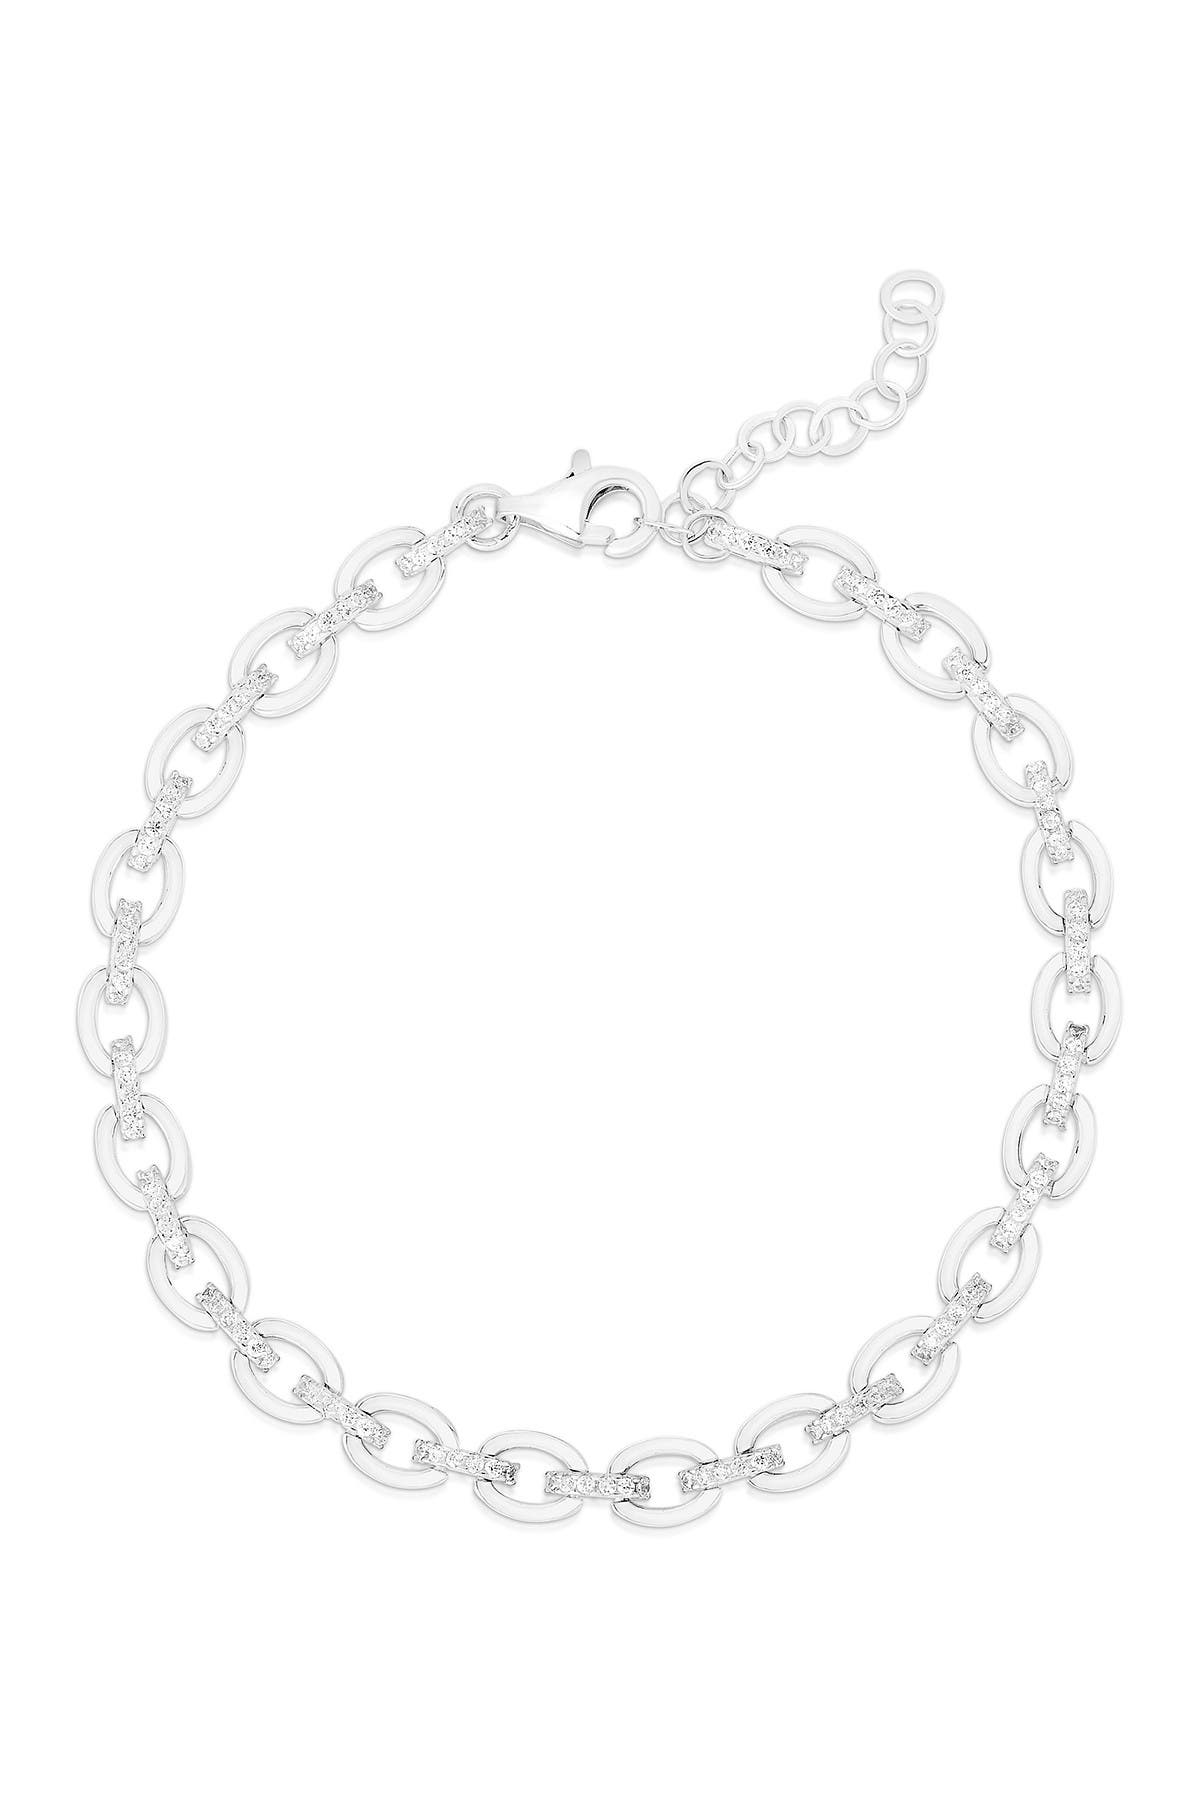 Image of Sphera Milano 14K White Gold Plated Sterling Silver Pave CZ Link Bracelet